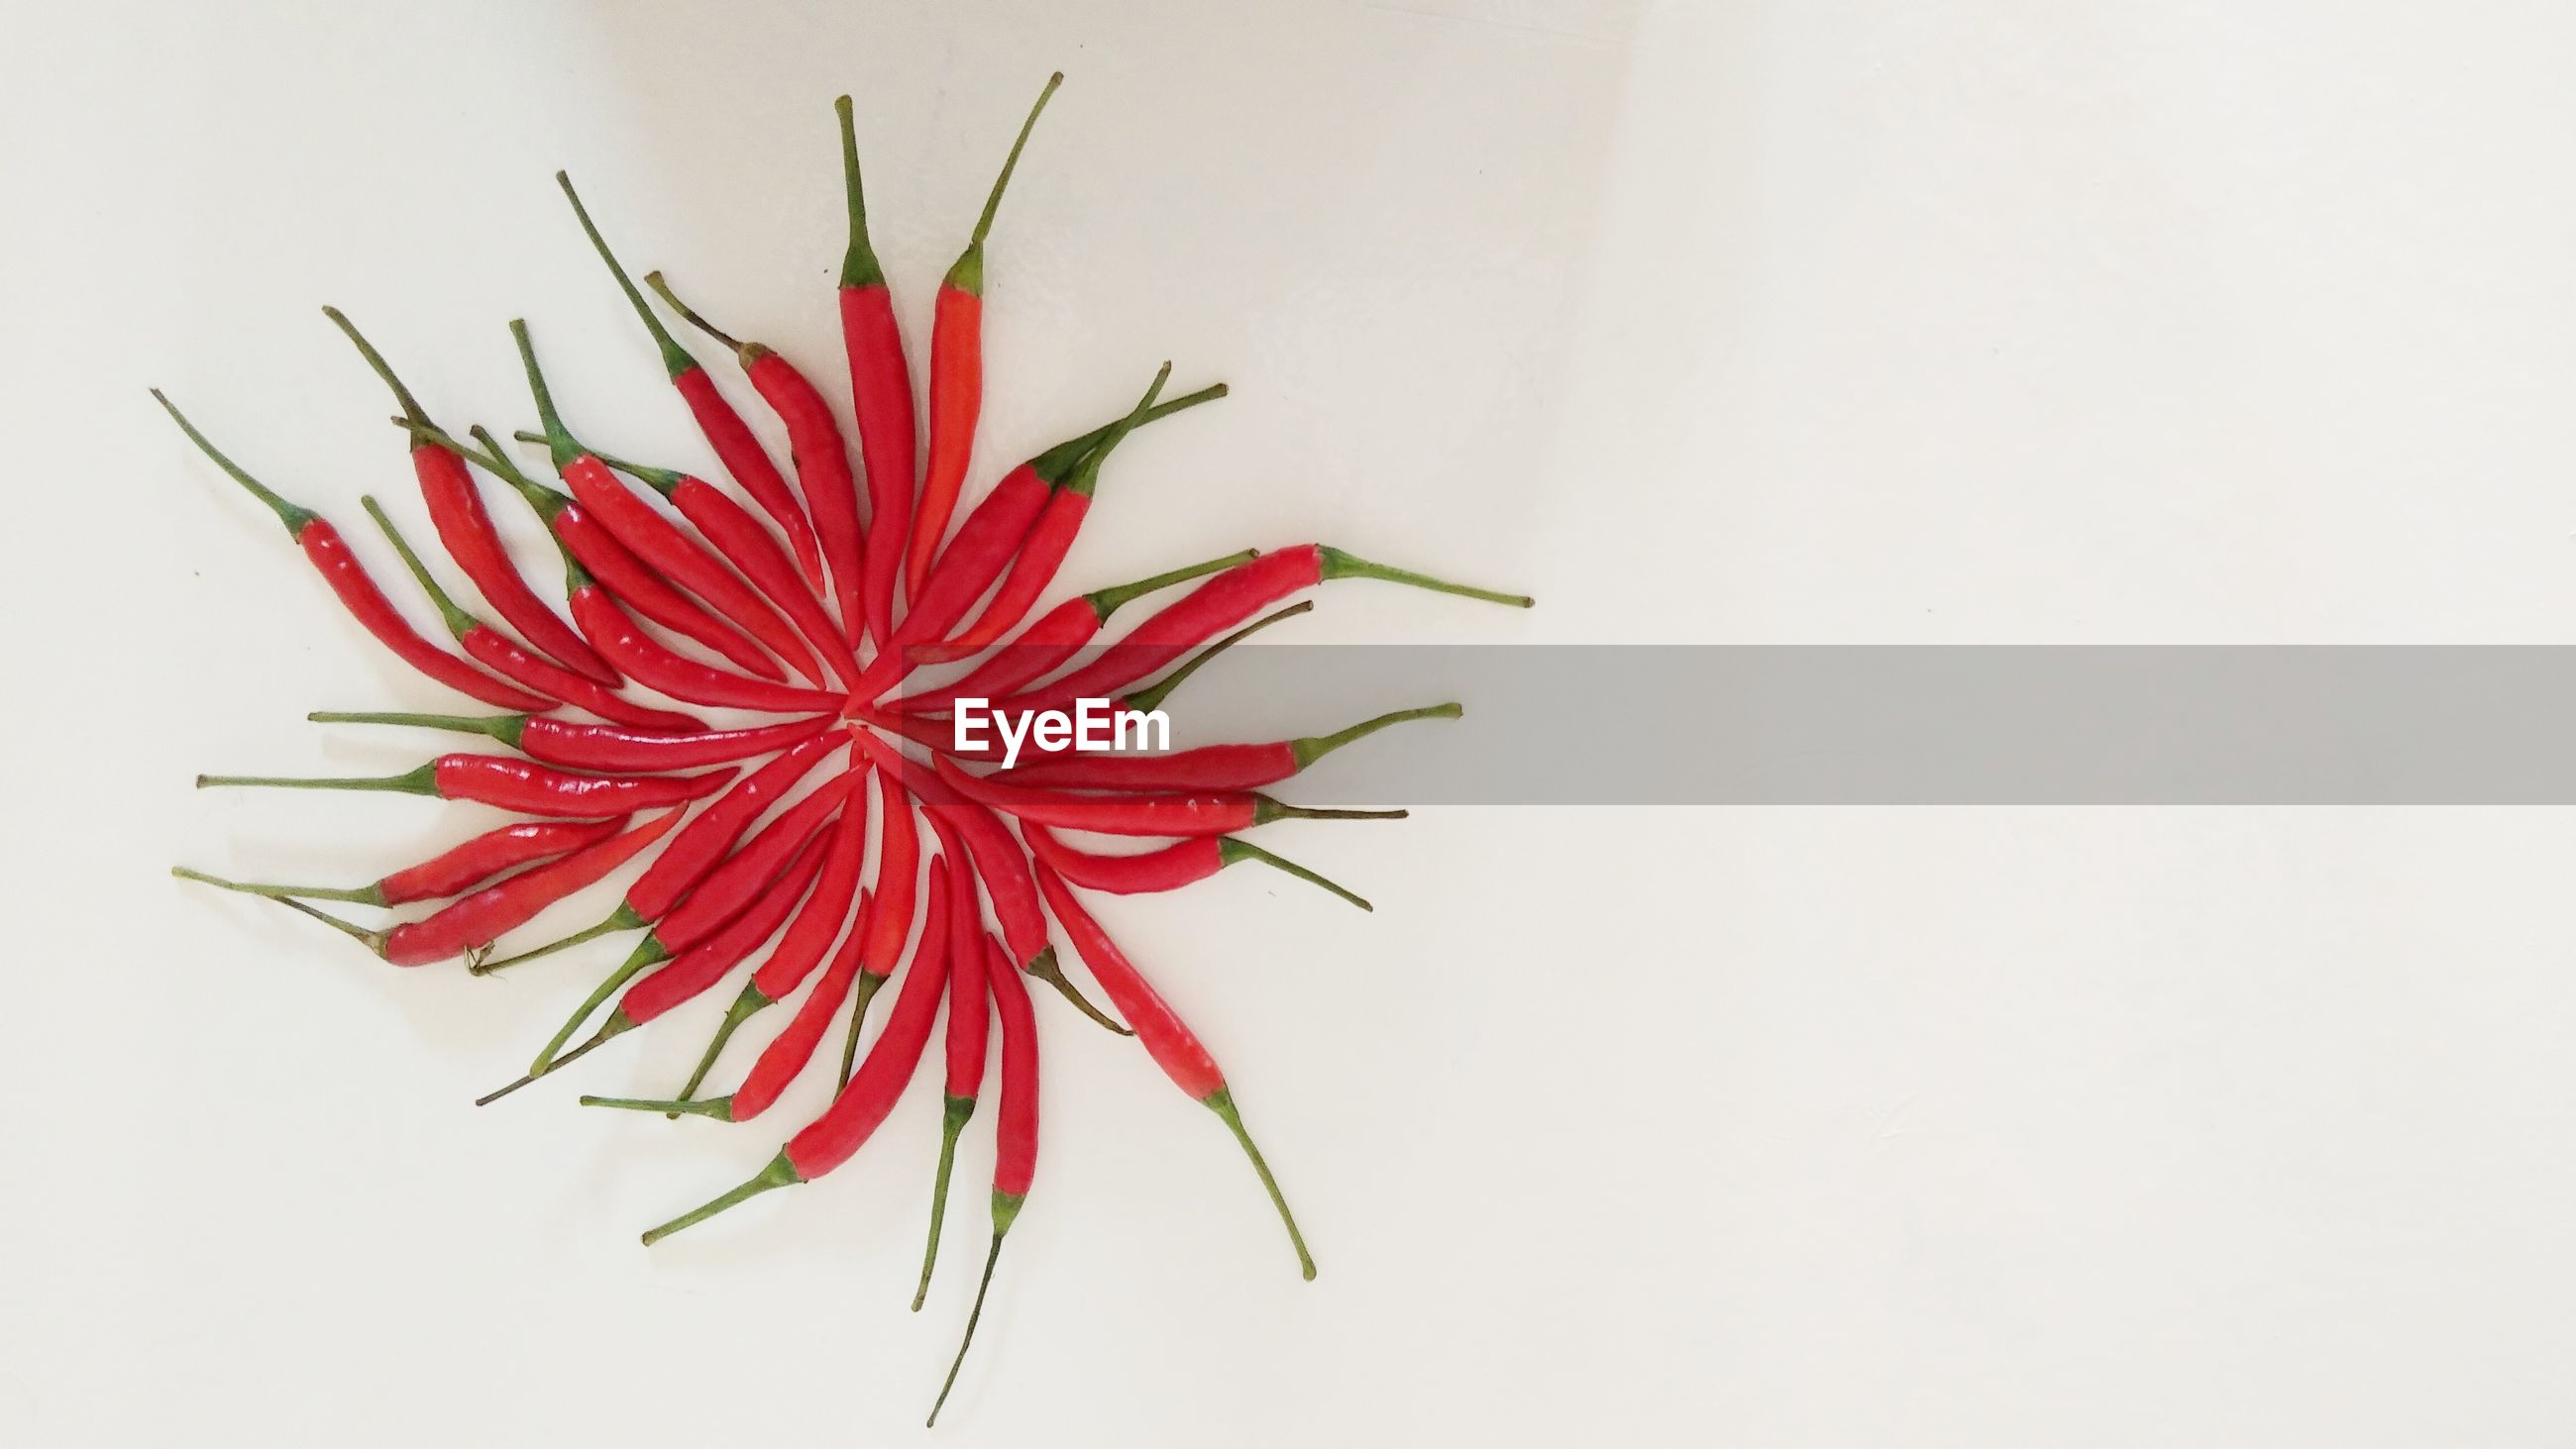 CLOSE-UP OF RED CHILI PEPPER OVER WHITE BACKGROUND